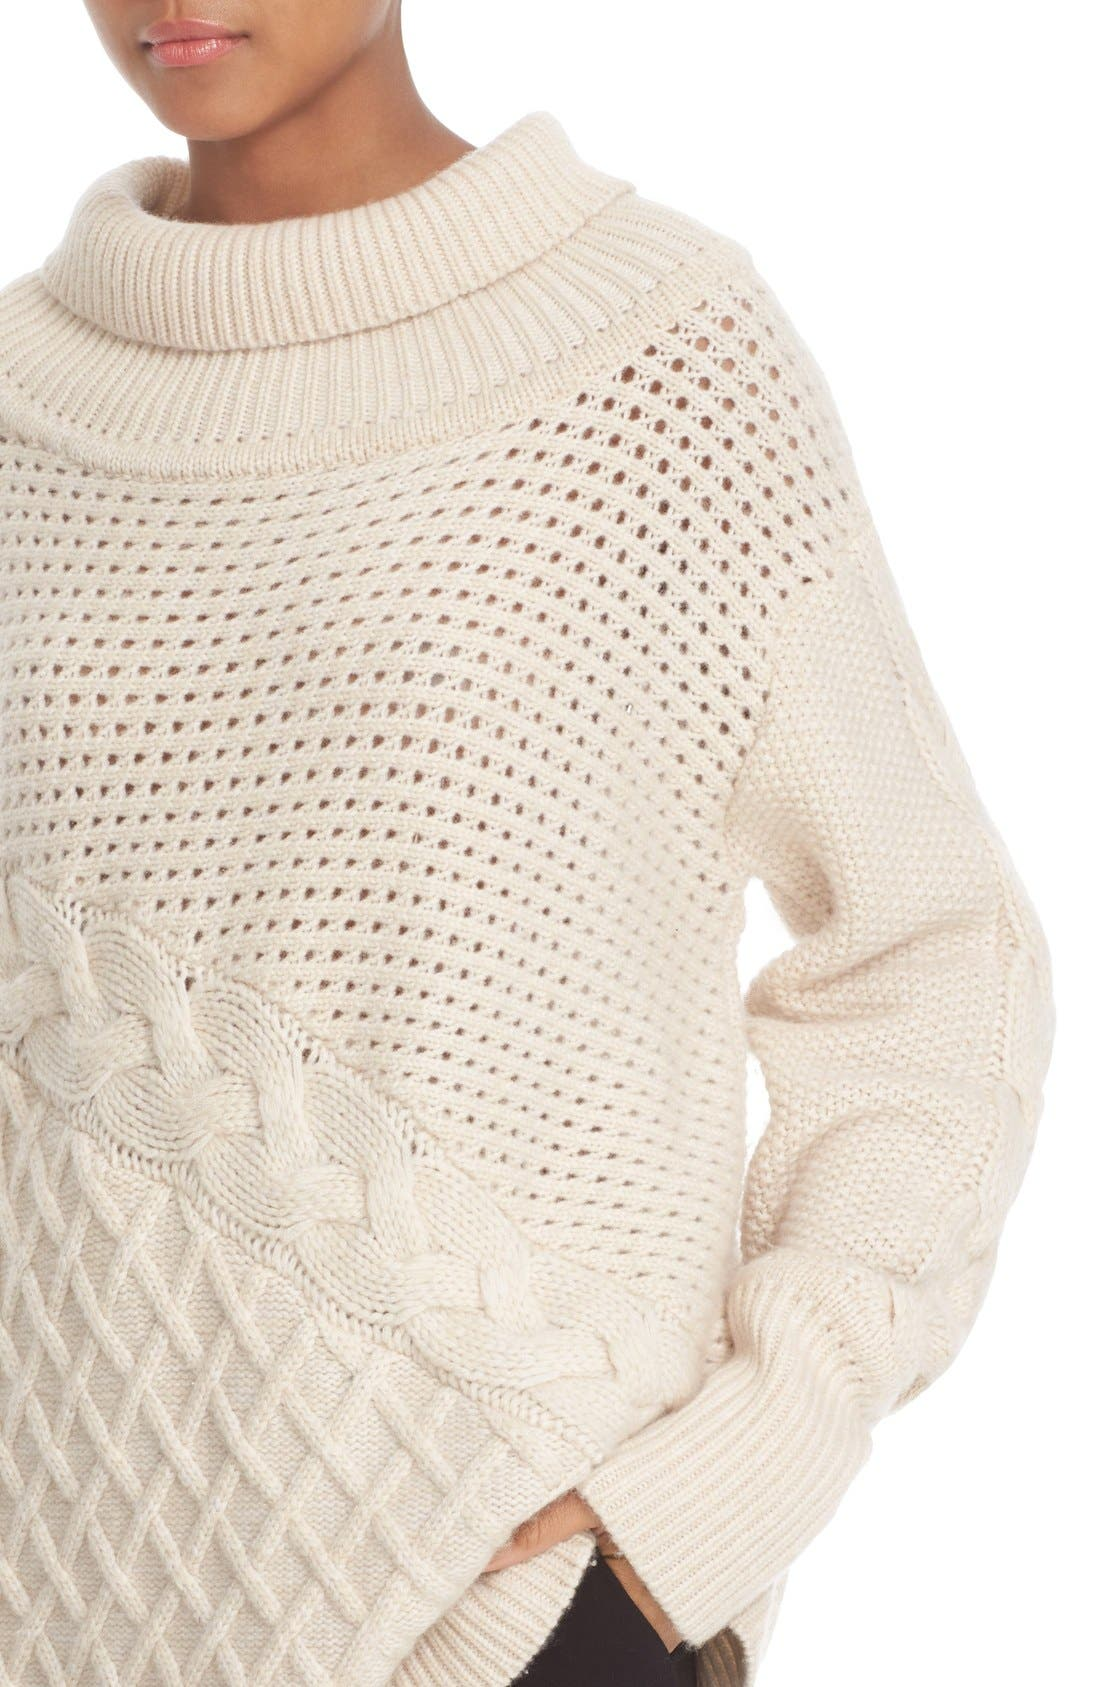 PRABAL GURUNG, Cable Knit Cashmere Sweater, Alternate thumbnail 3, color, 904